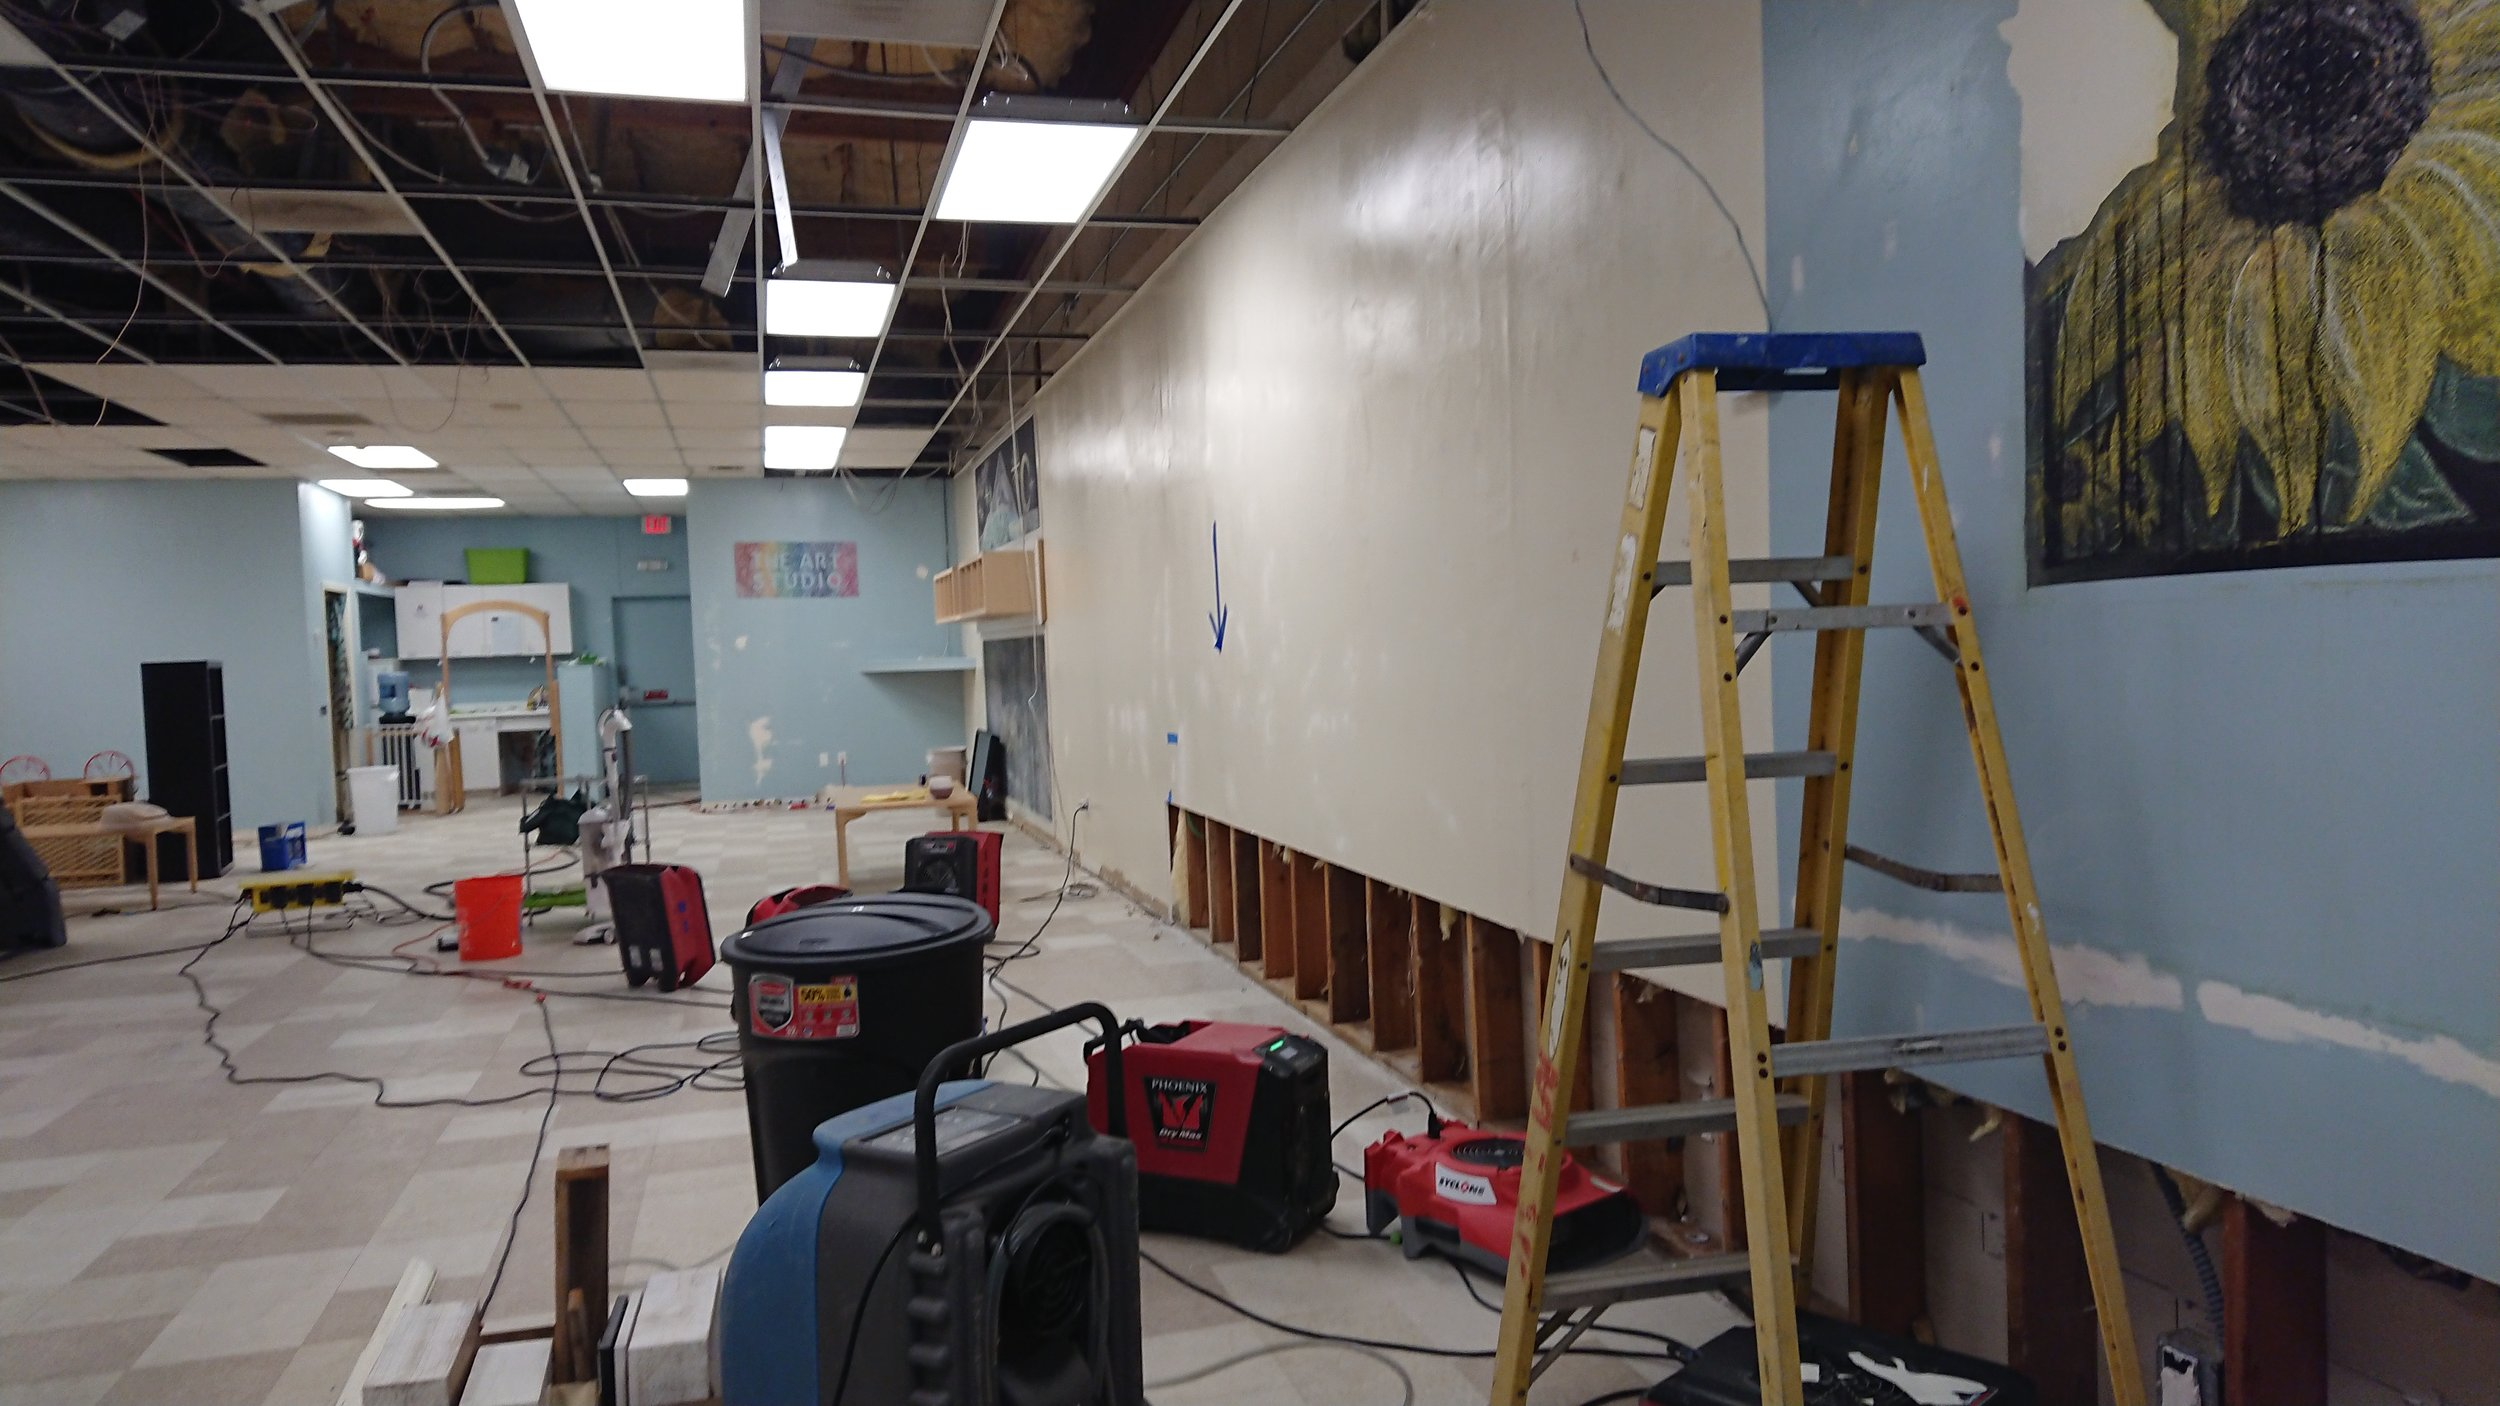 December 19th, most furniture has been put in storage, damaged ceiling tiles removed, and starting drywall repair